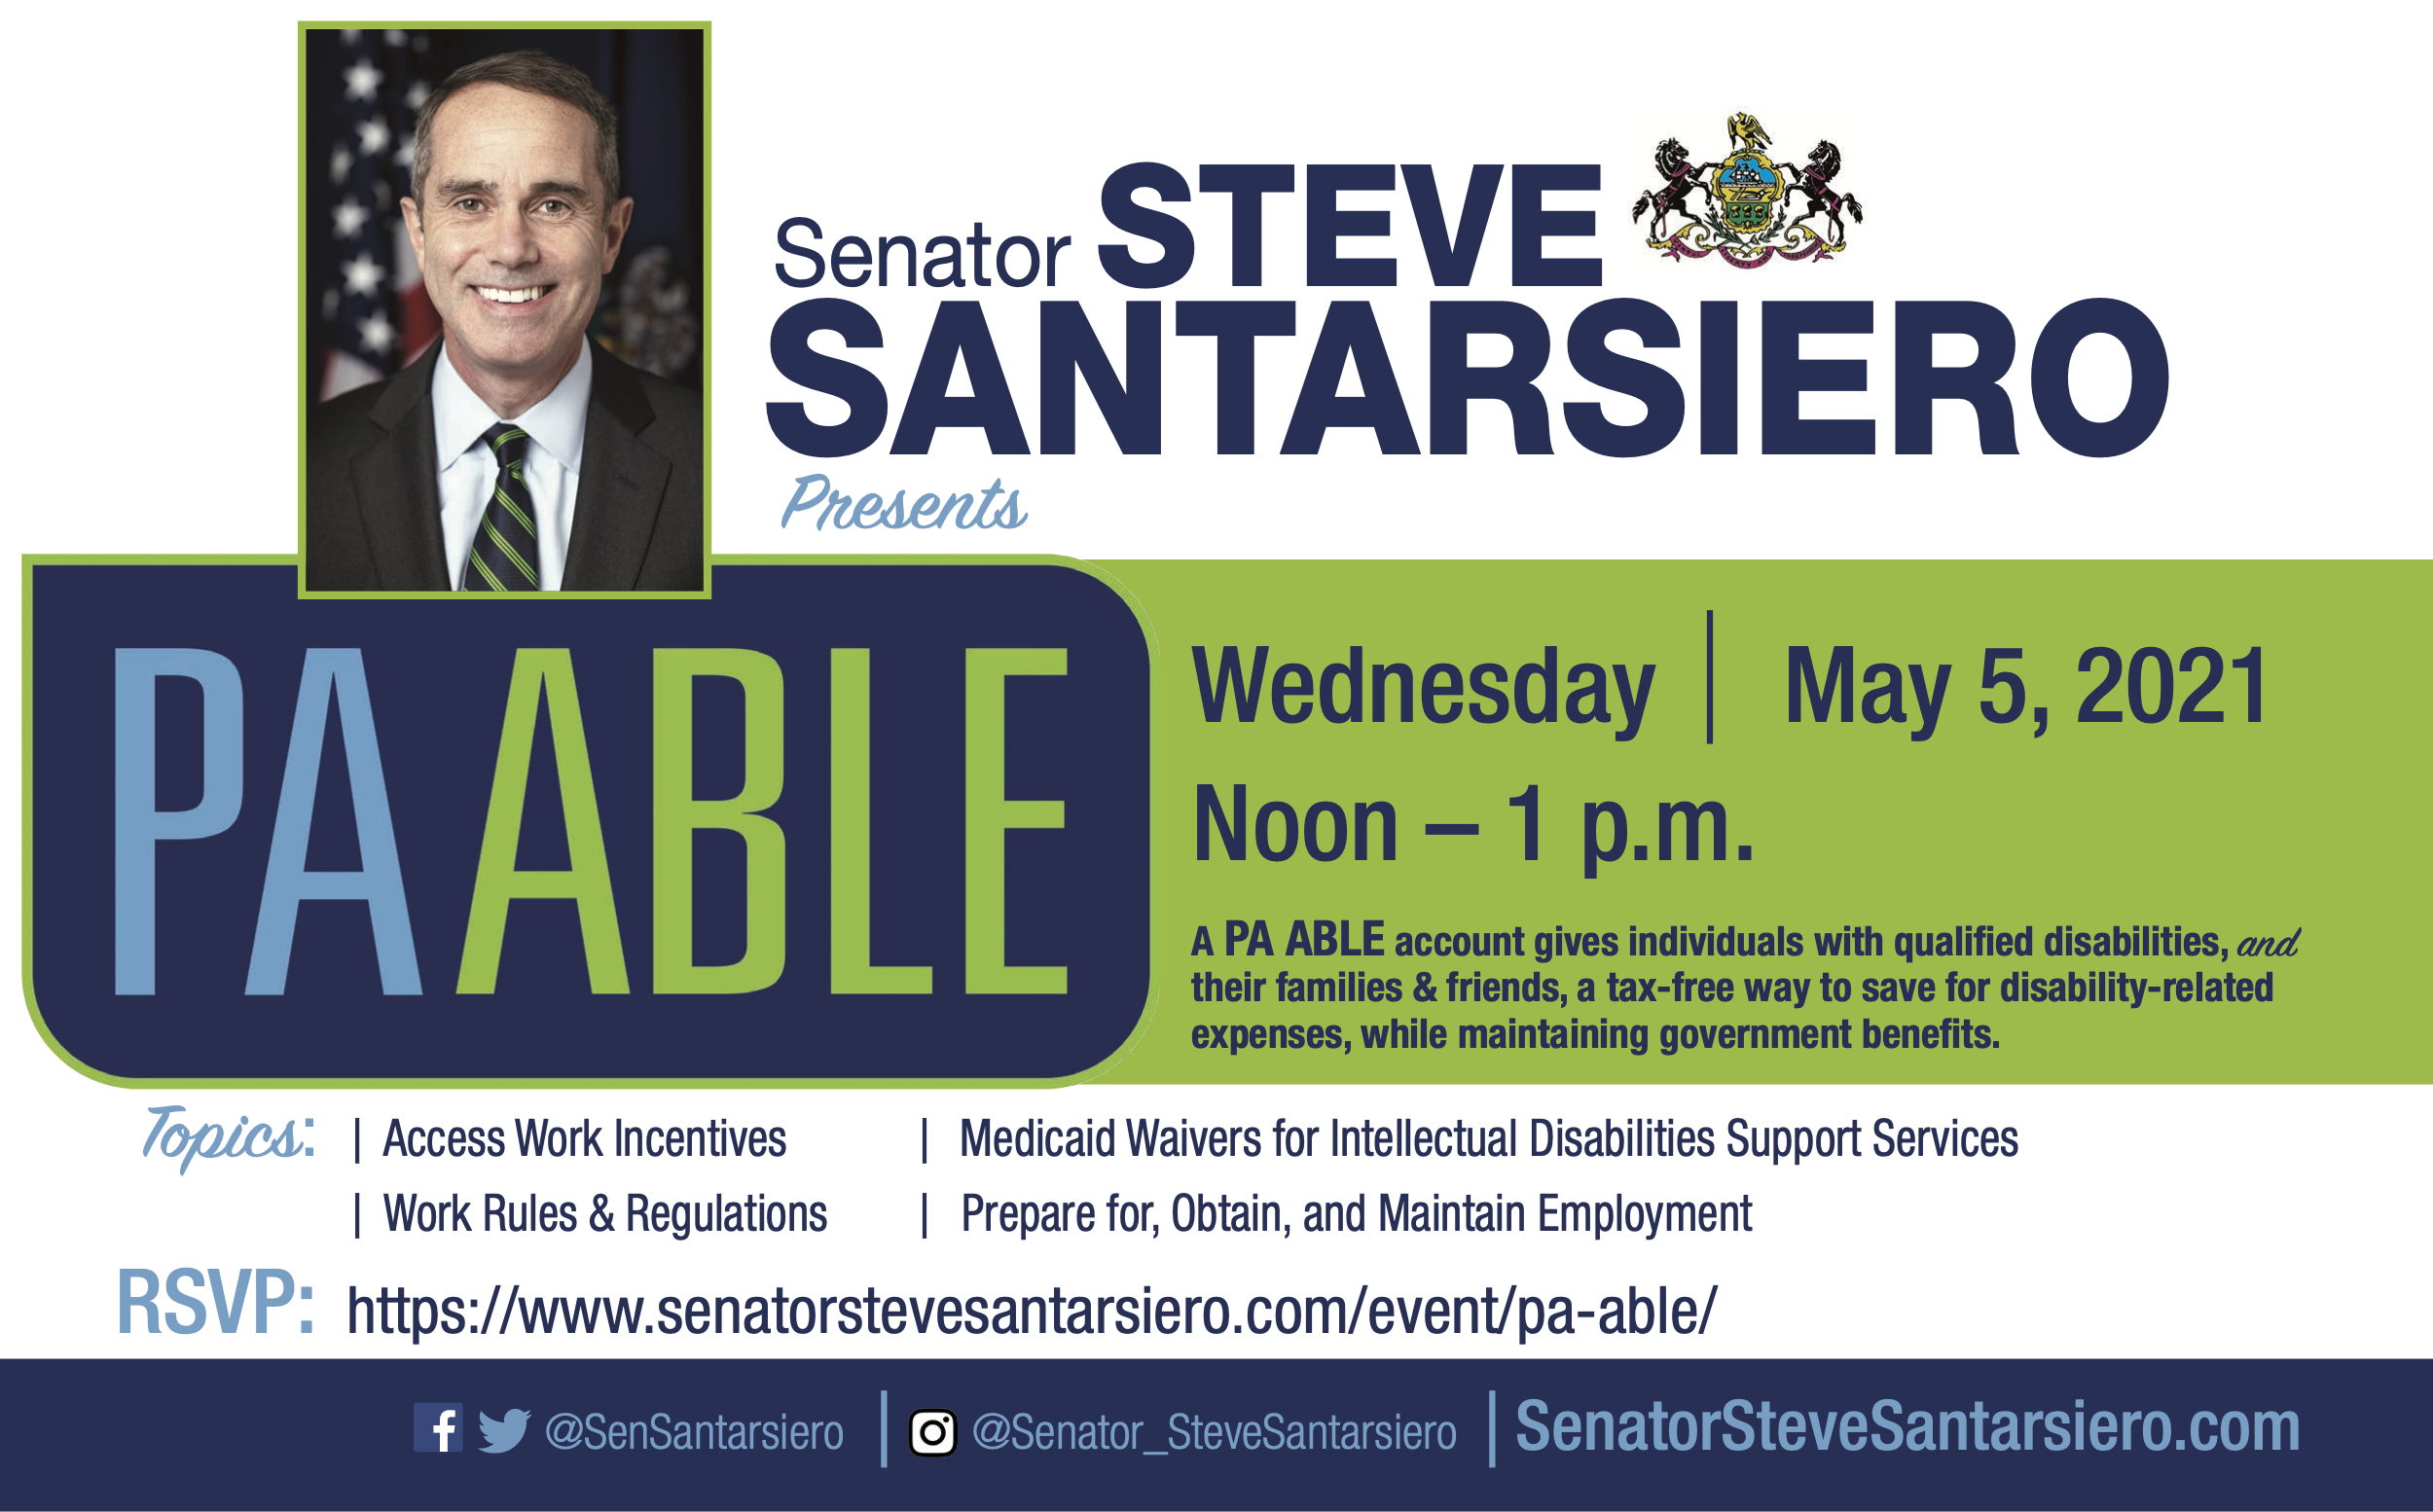 An advertisement for the PA ABLE event featuring a headshot of Senator Steve Santarsiero